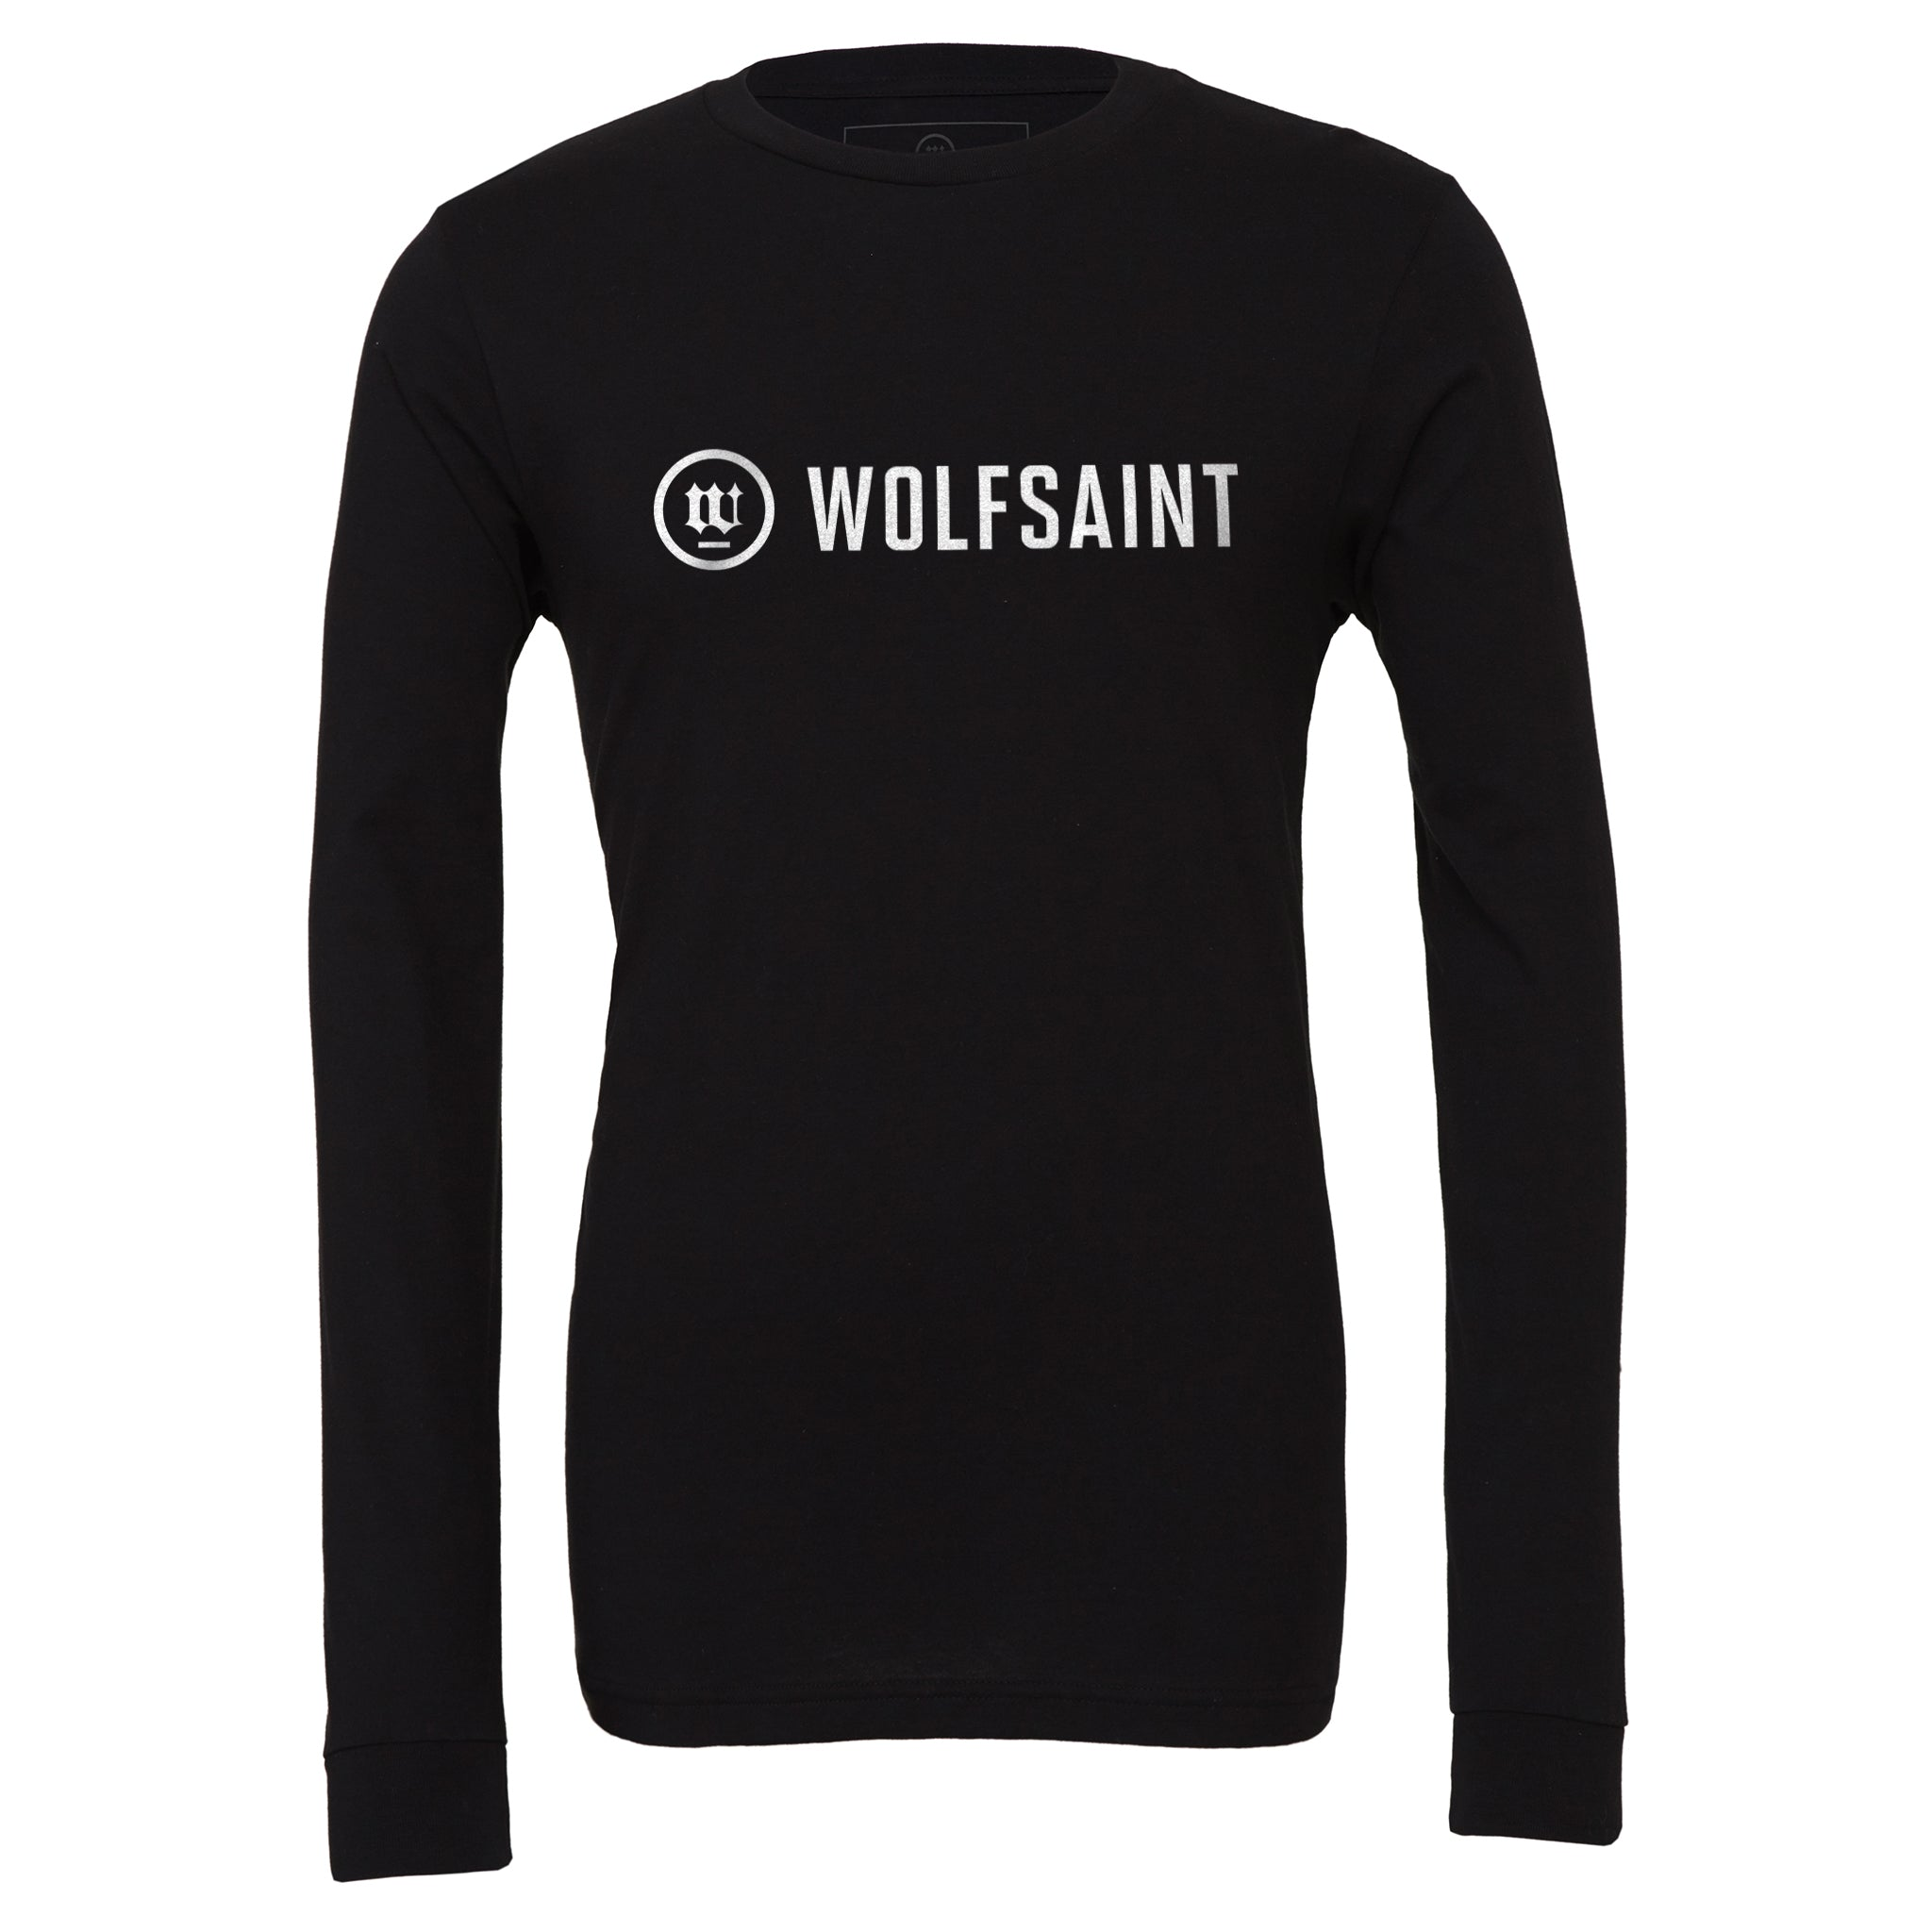 A simple, elegant unisex long sleeved t-shirt in Classic Black, with the fashionable WOLFSAINT logo branding across the chest in white. From Wolfsaint.net